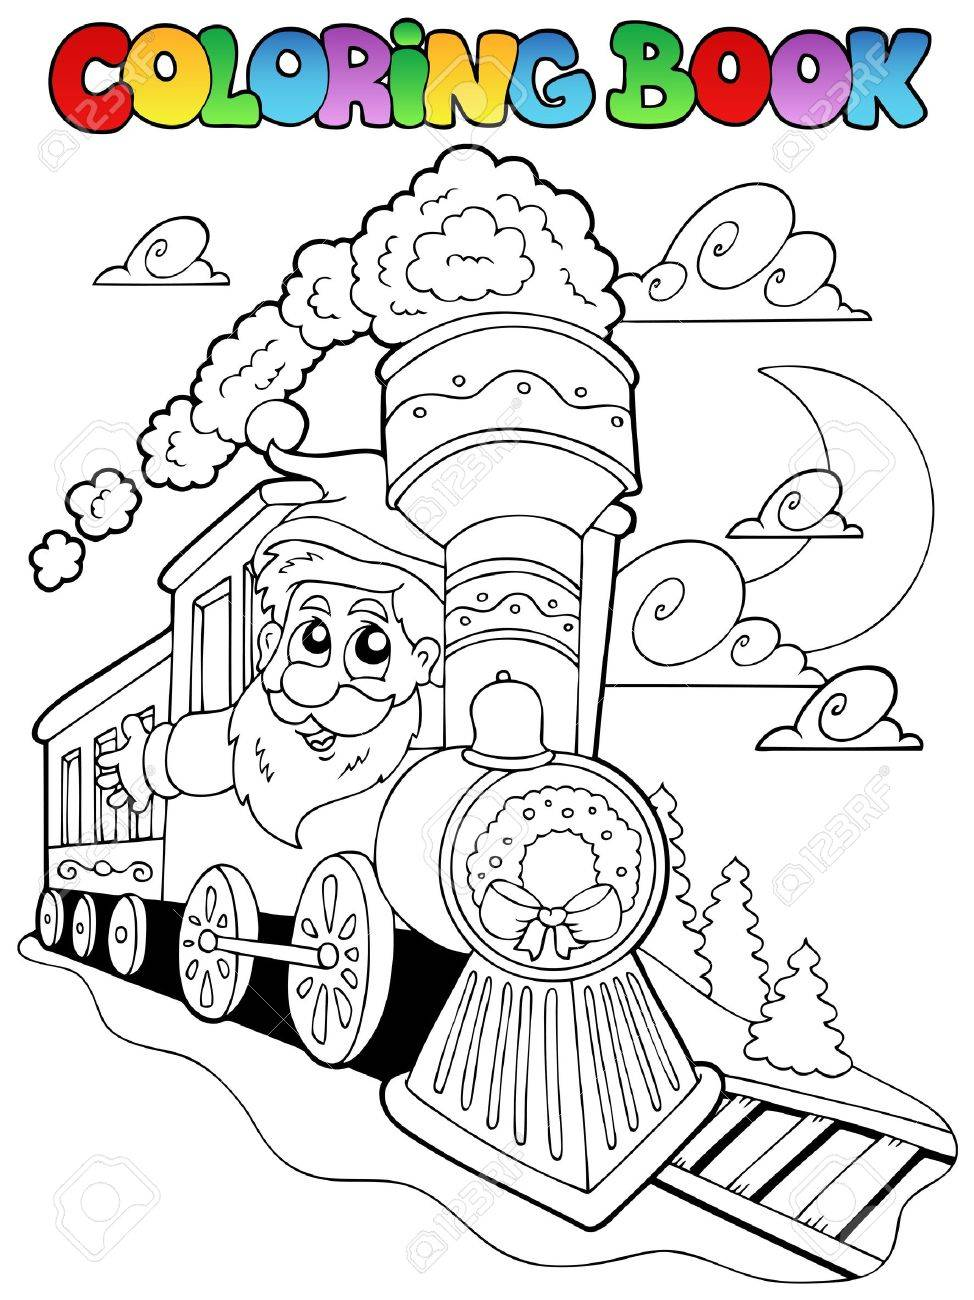 Coloring book Christmas topic  illustration. Stock Vector - 10780691